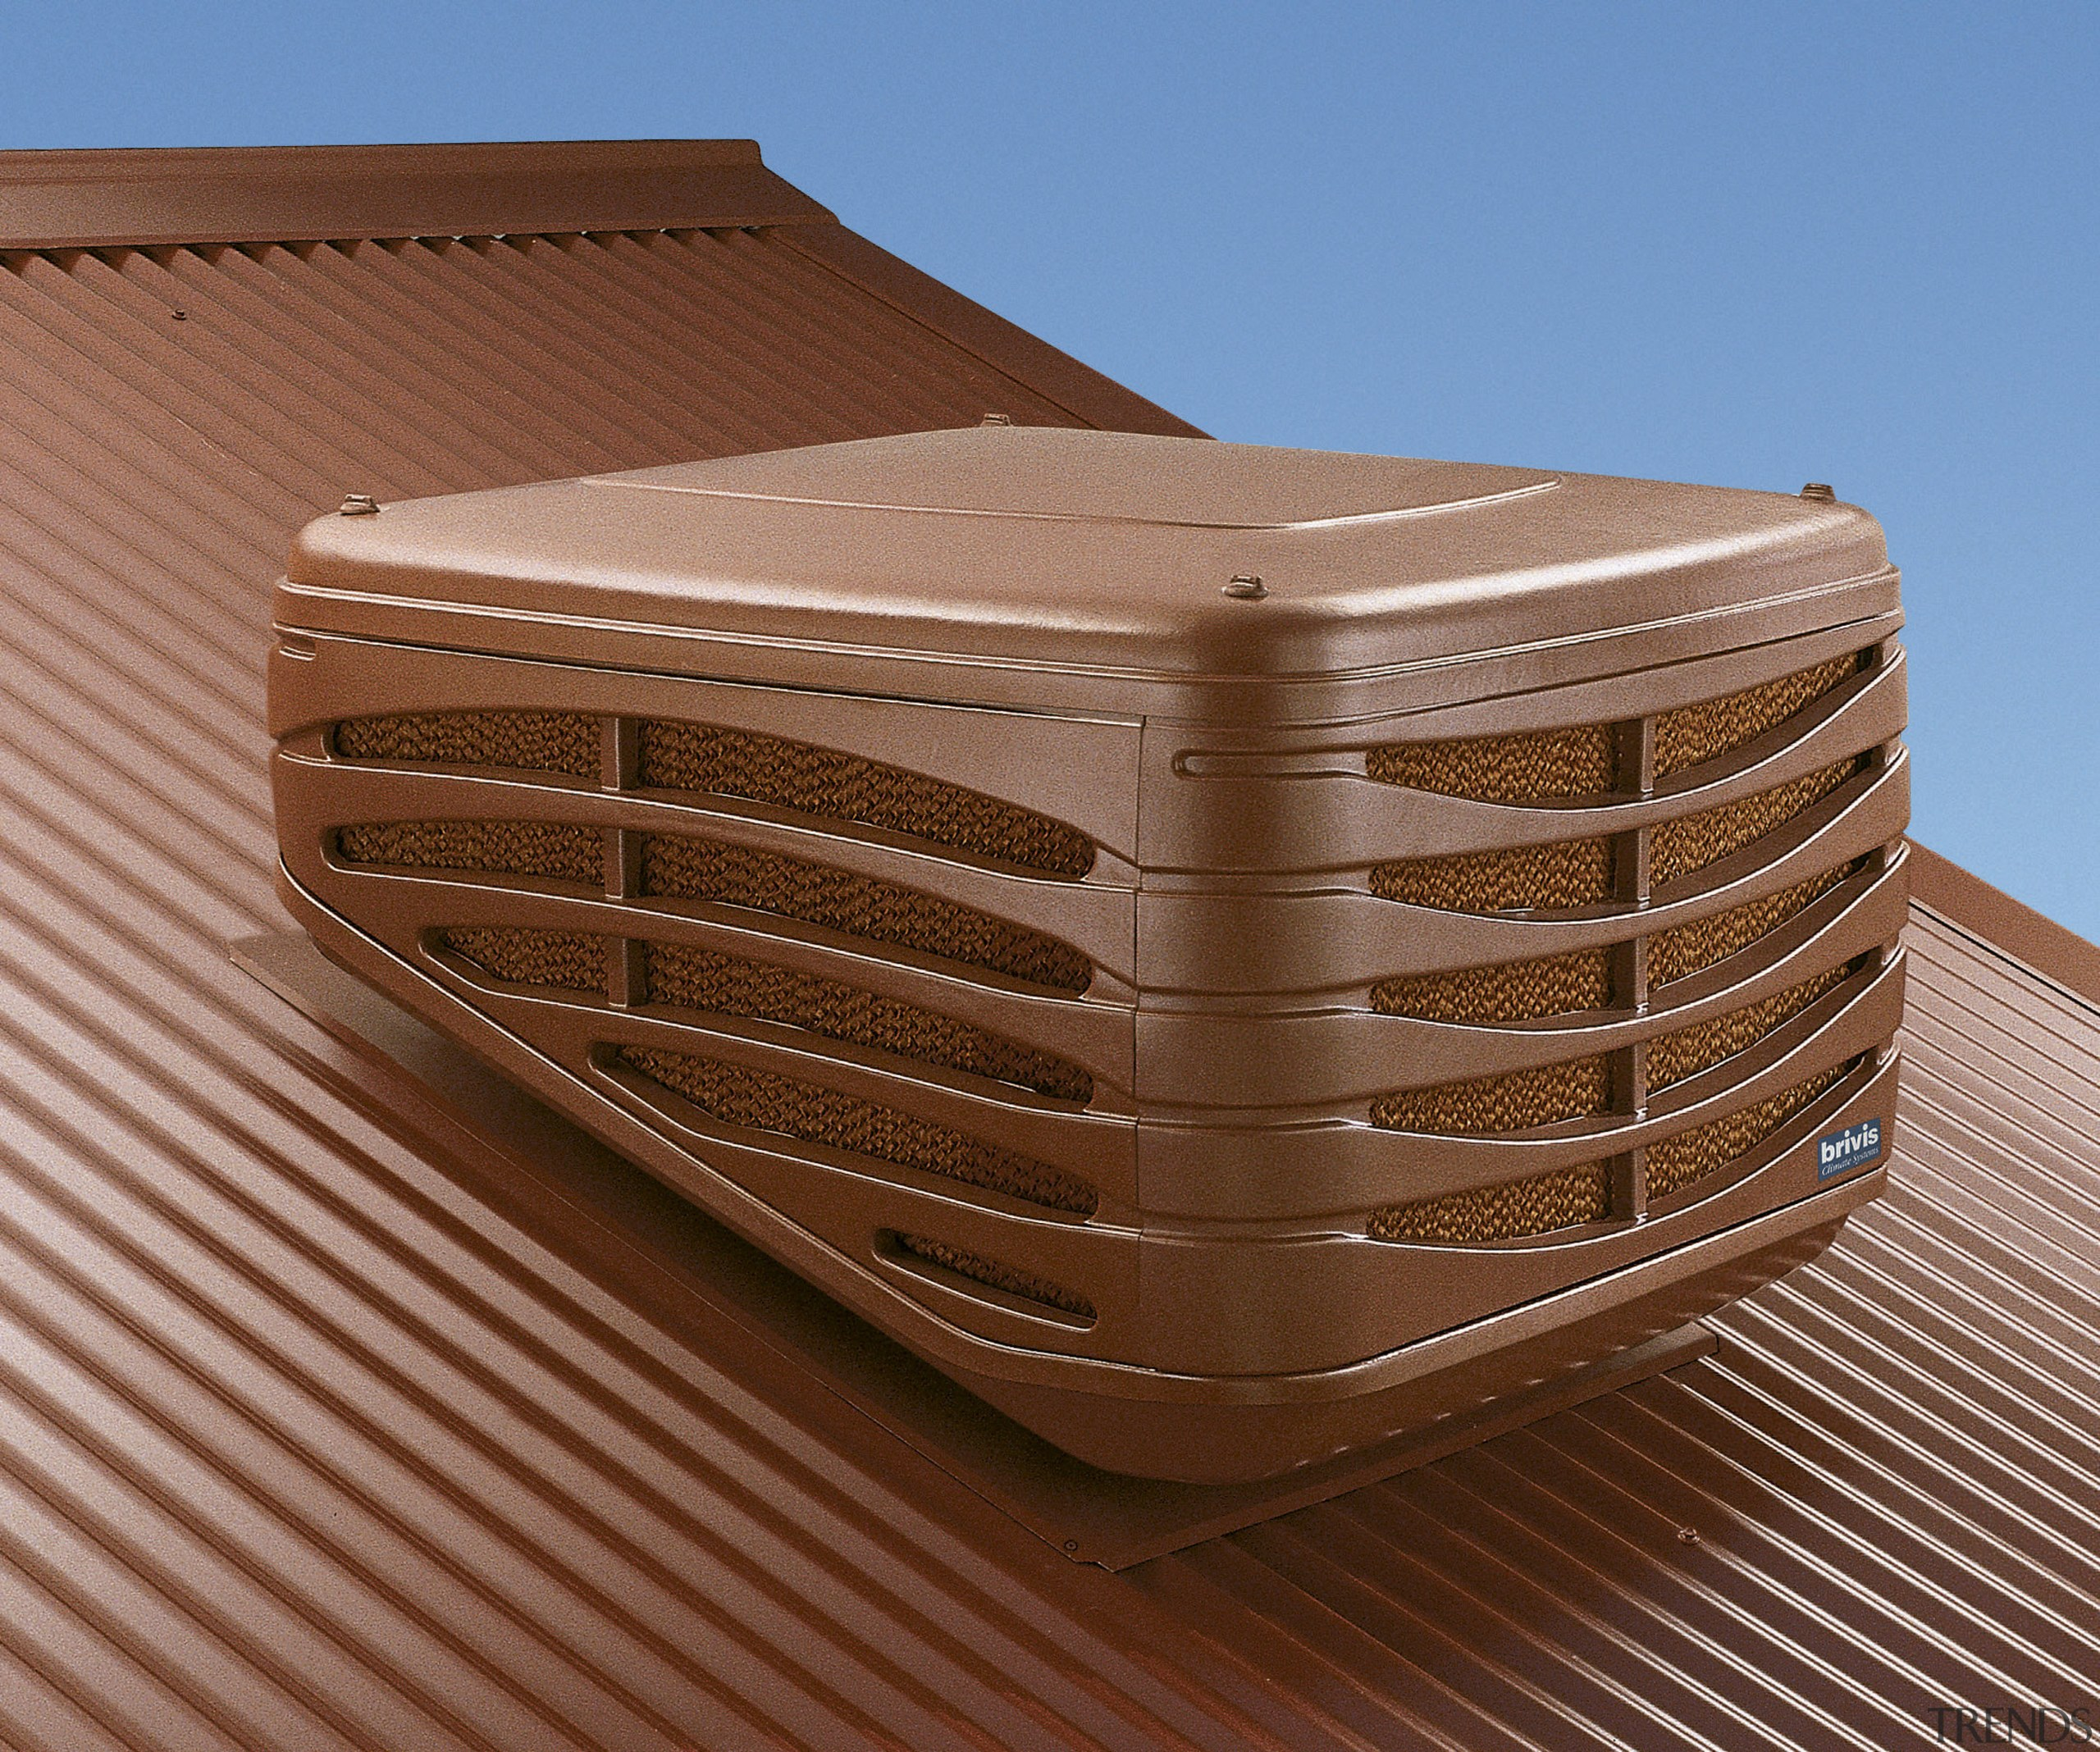 Brivis air conditioning systems have been fine-tuned to product, product design, brown